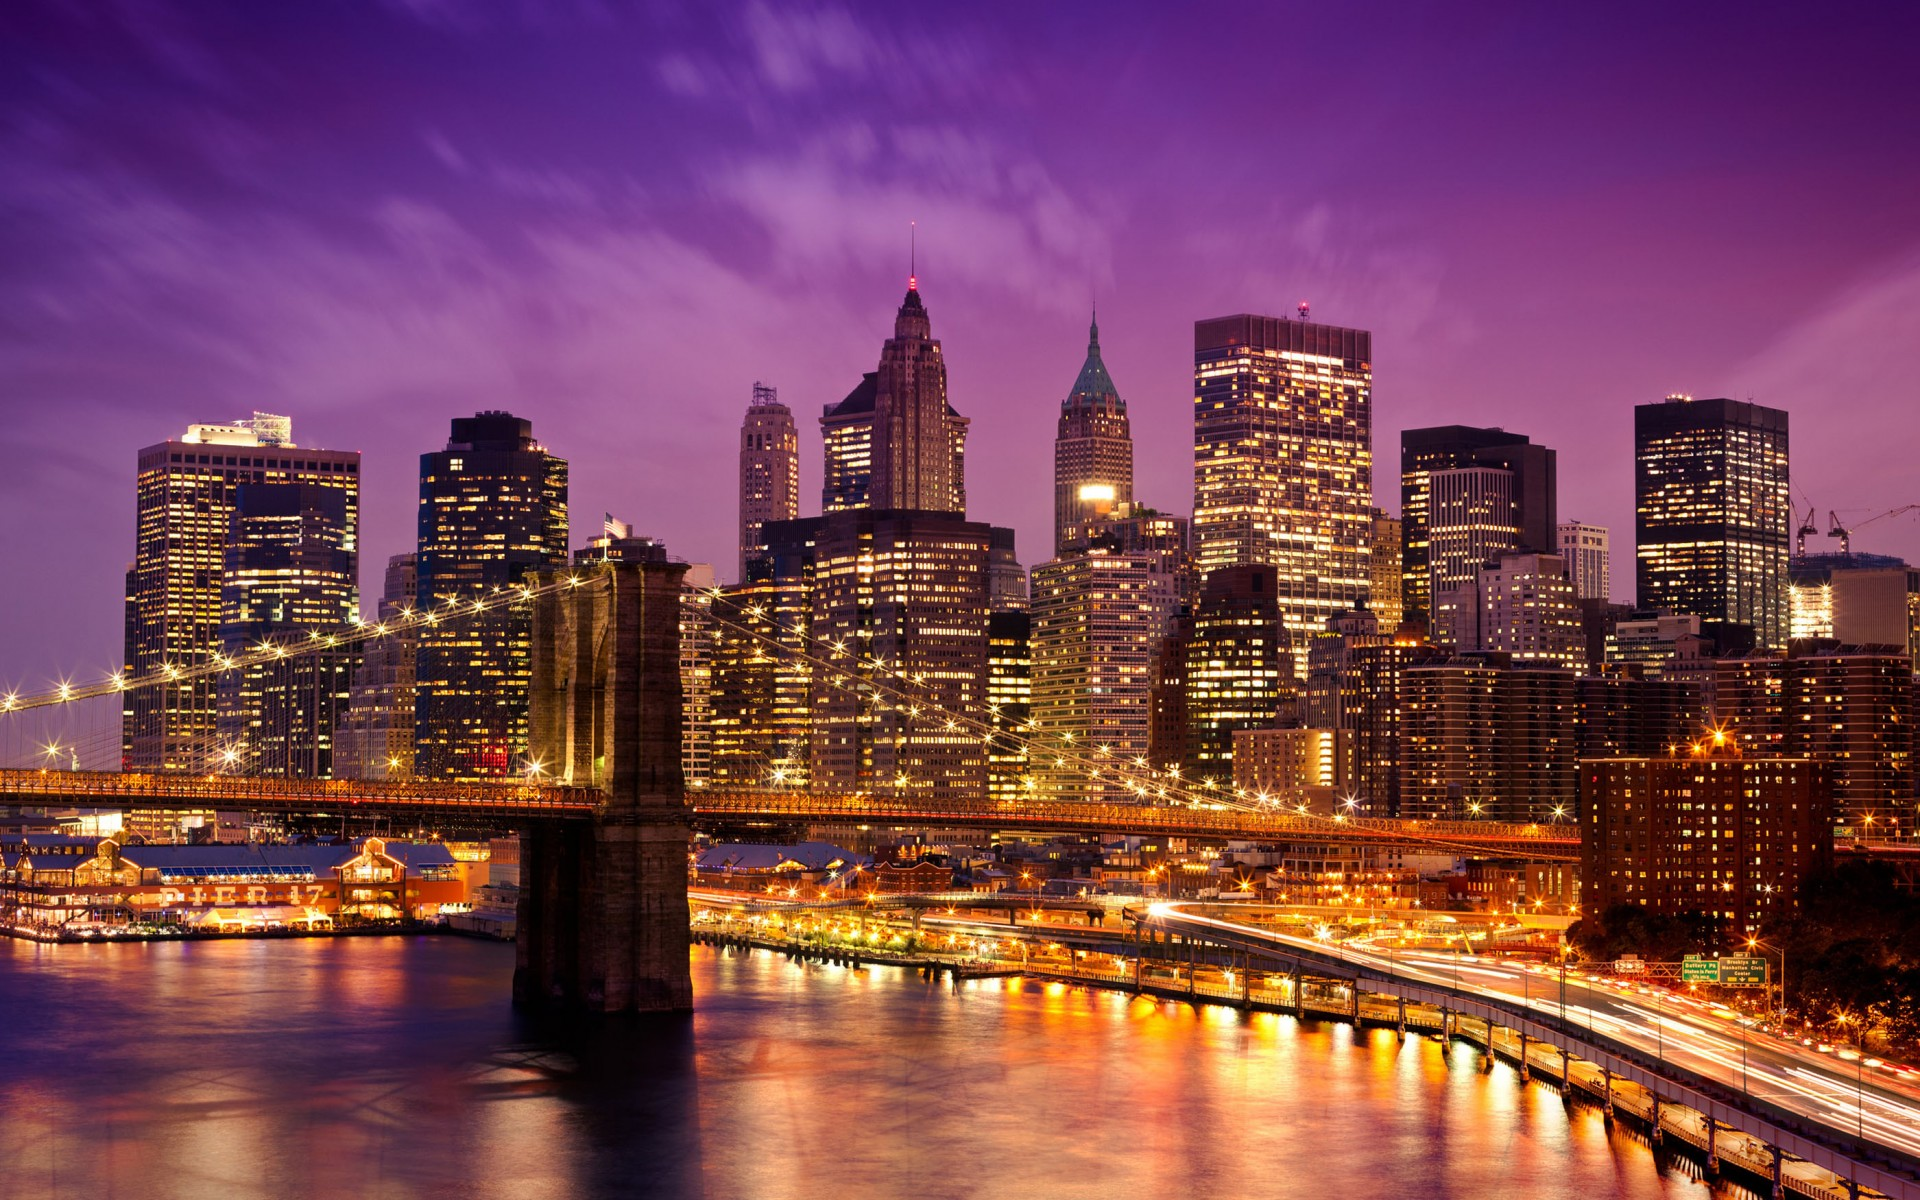 New York City Wallpapers | Best Wallpapers